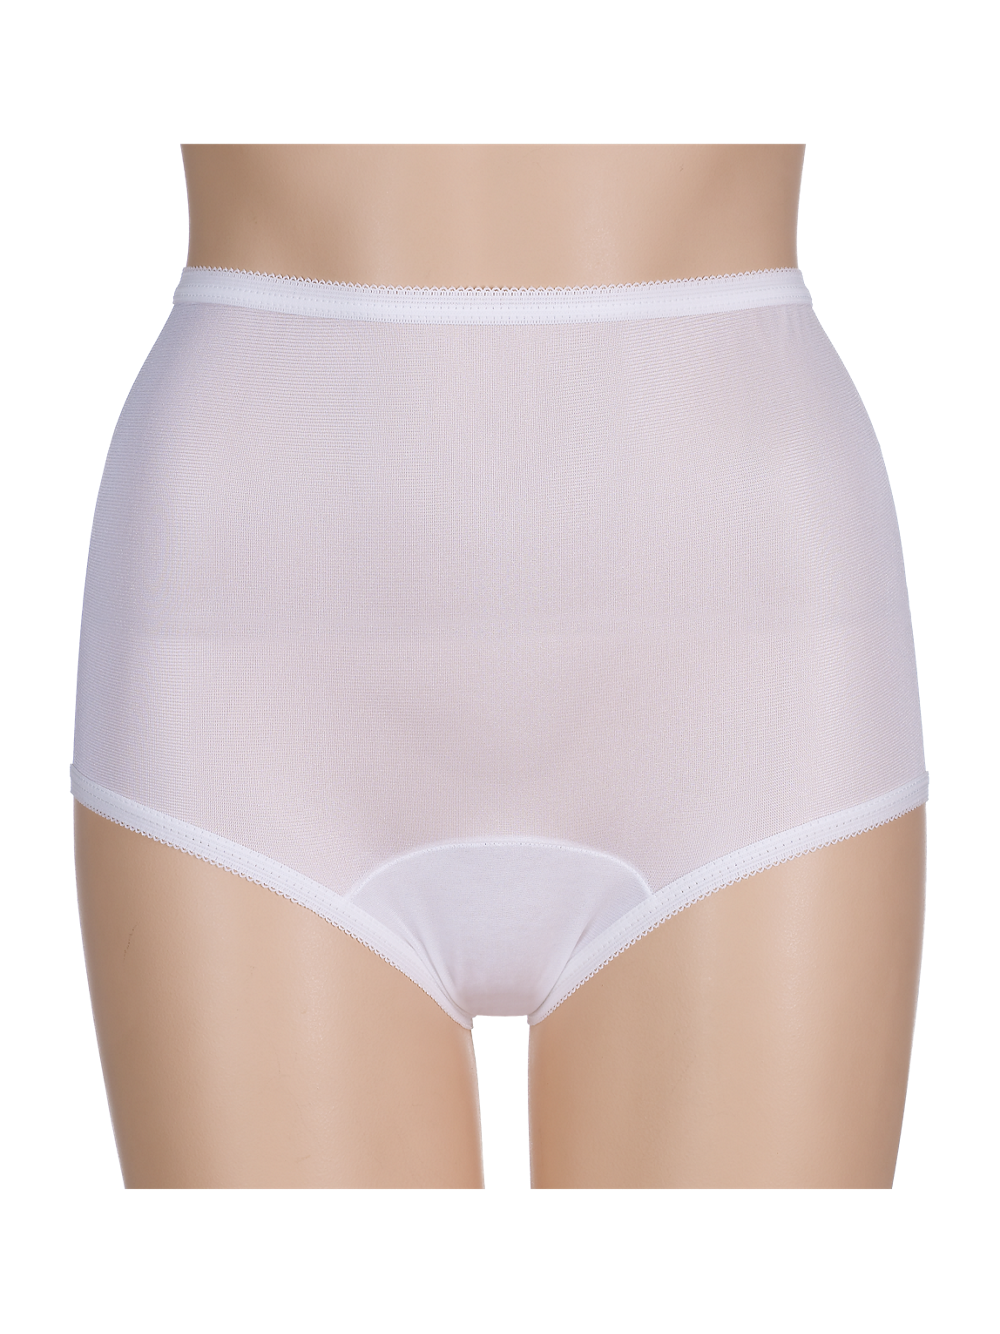 nylon full brief panties | womens underwear | 3 pair